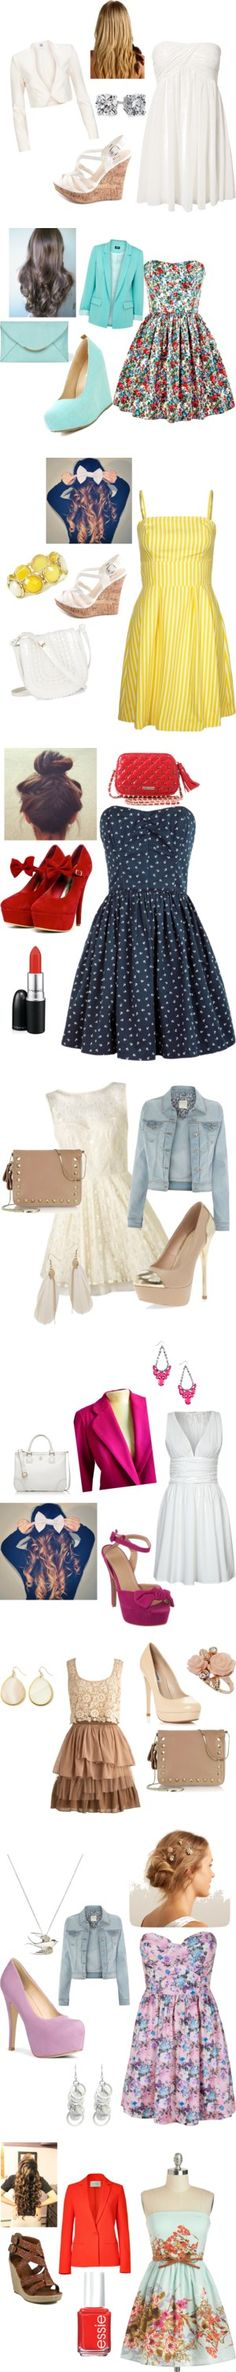 """""""The Other Side Of Me."""" by emmmmmmas3 on Polyvore"""